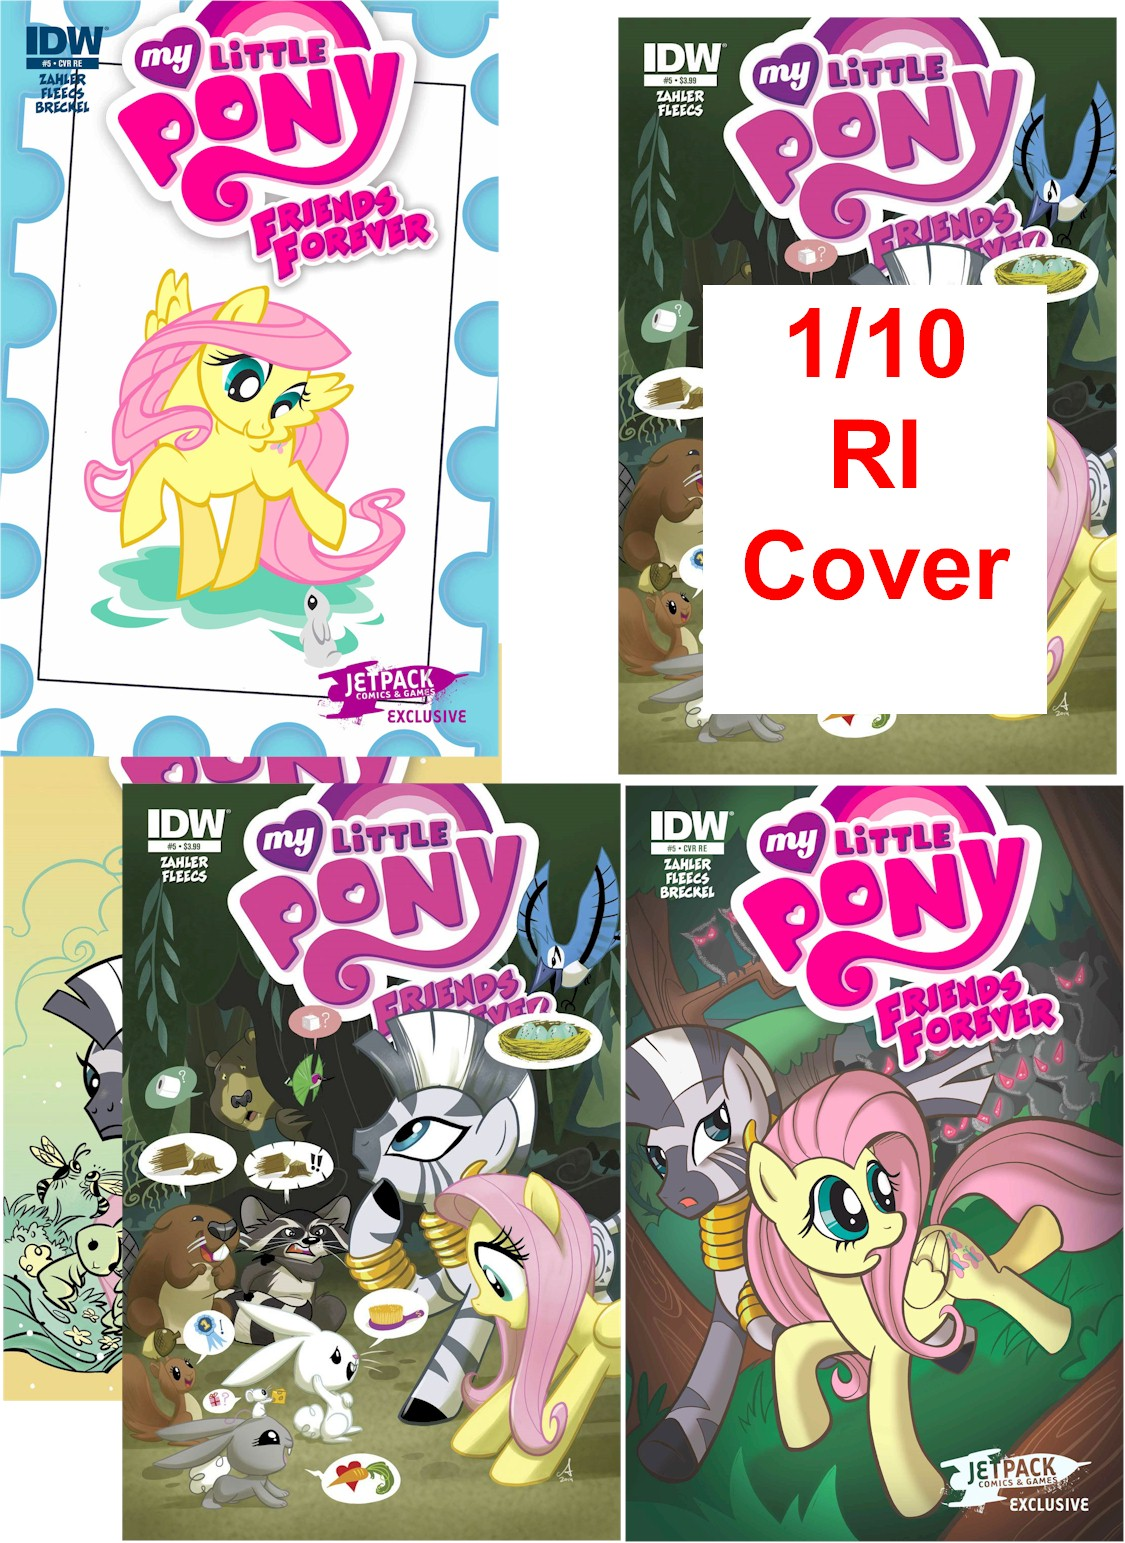 MY LITTLE PONY FRIENDS FOREVER #5 (5 PACK)